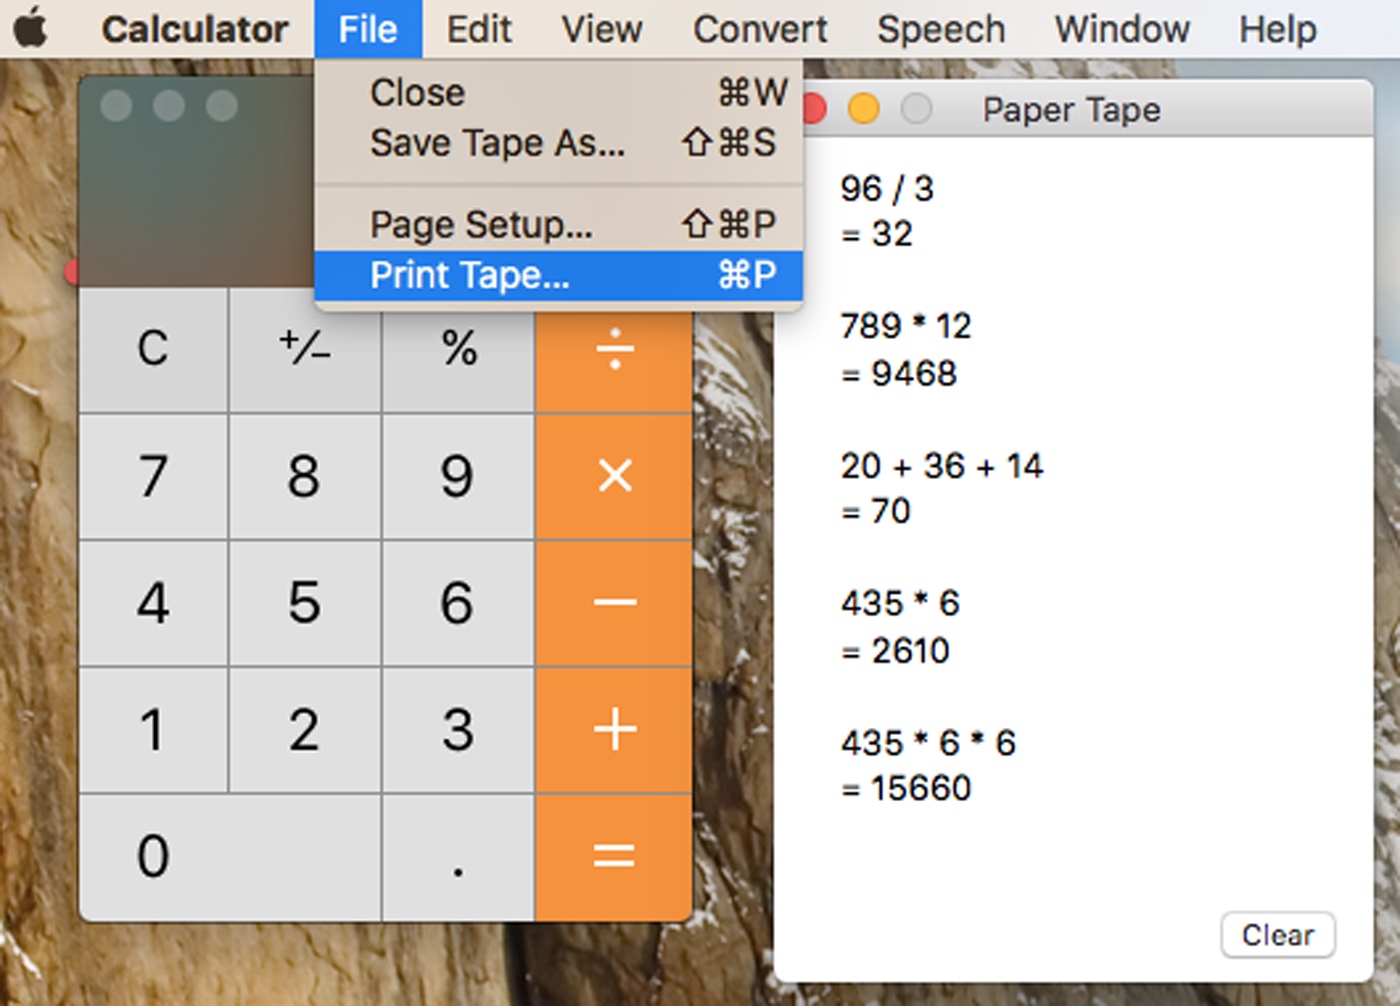 Print Mac Calculator Tape